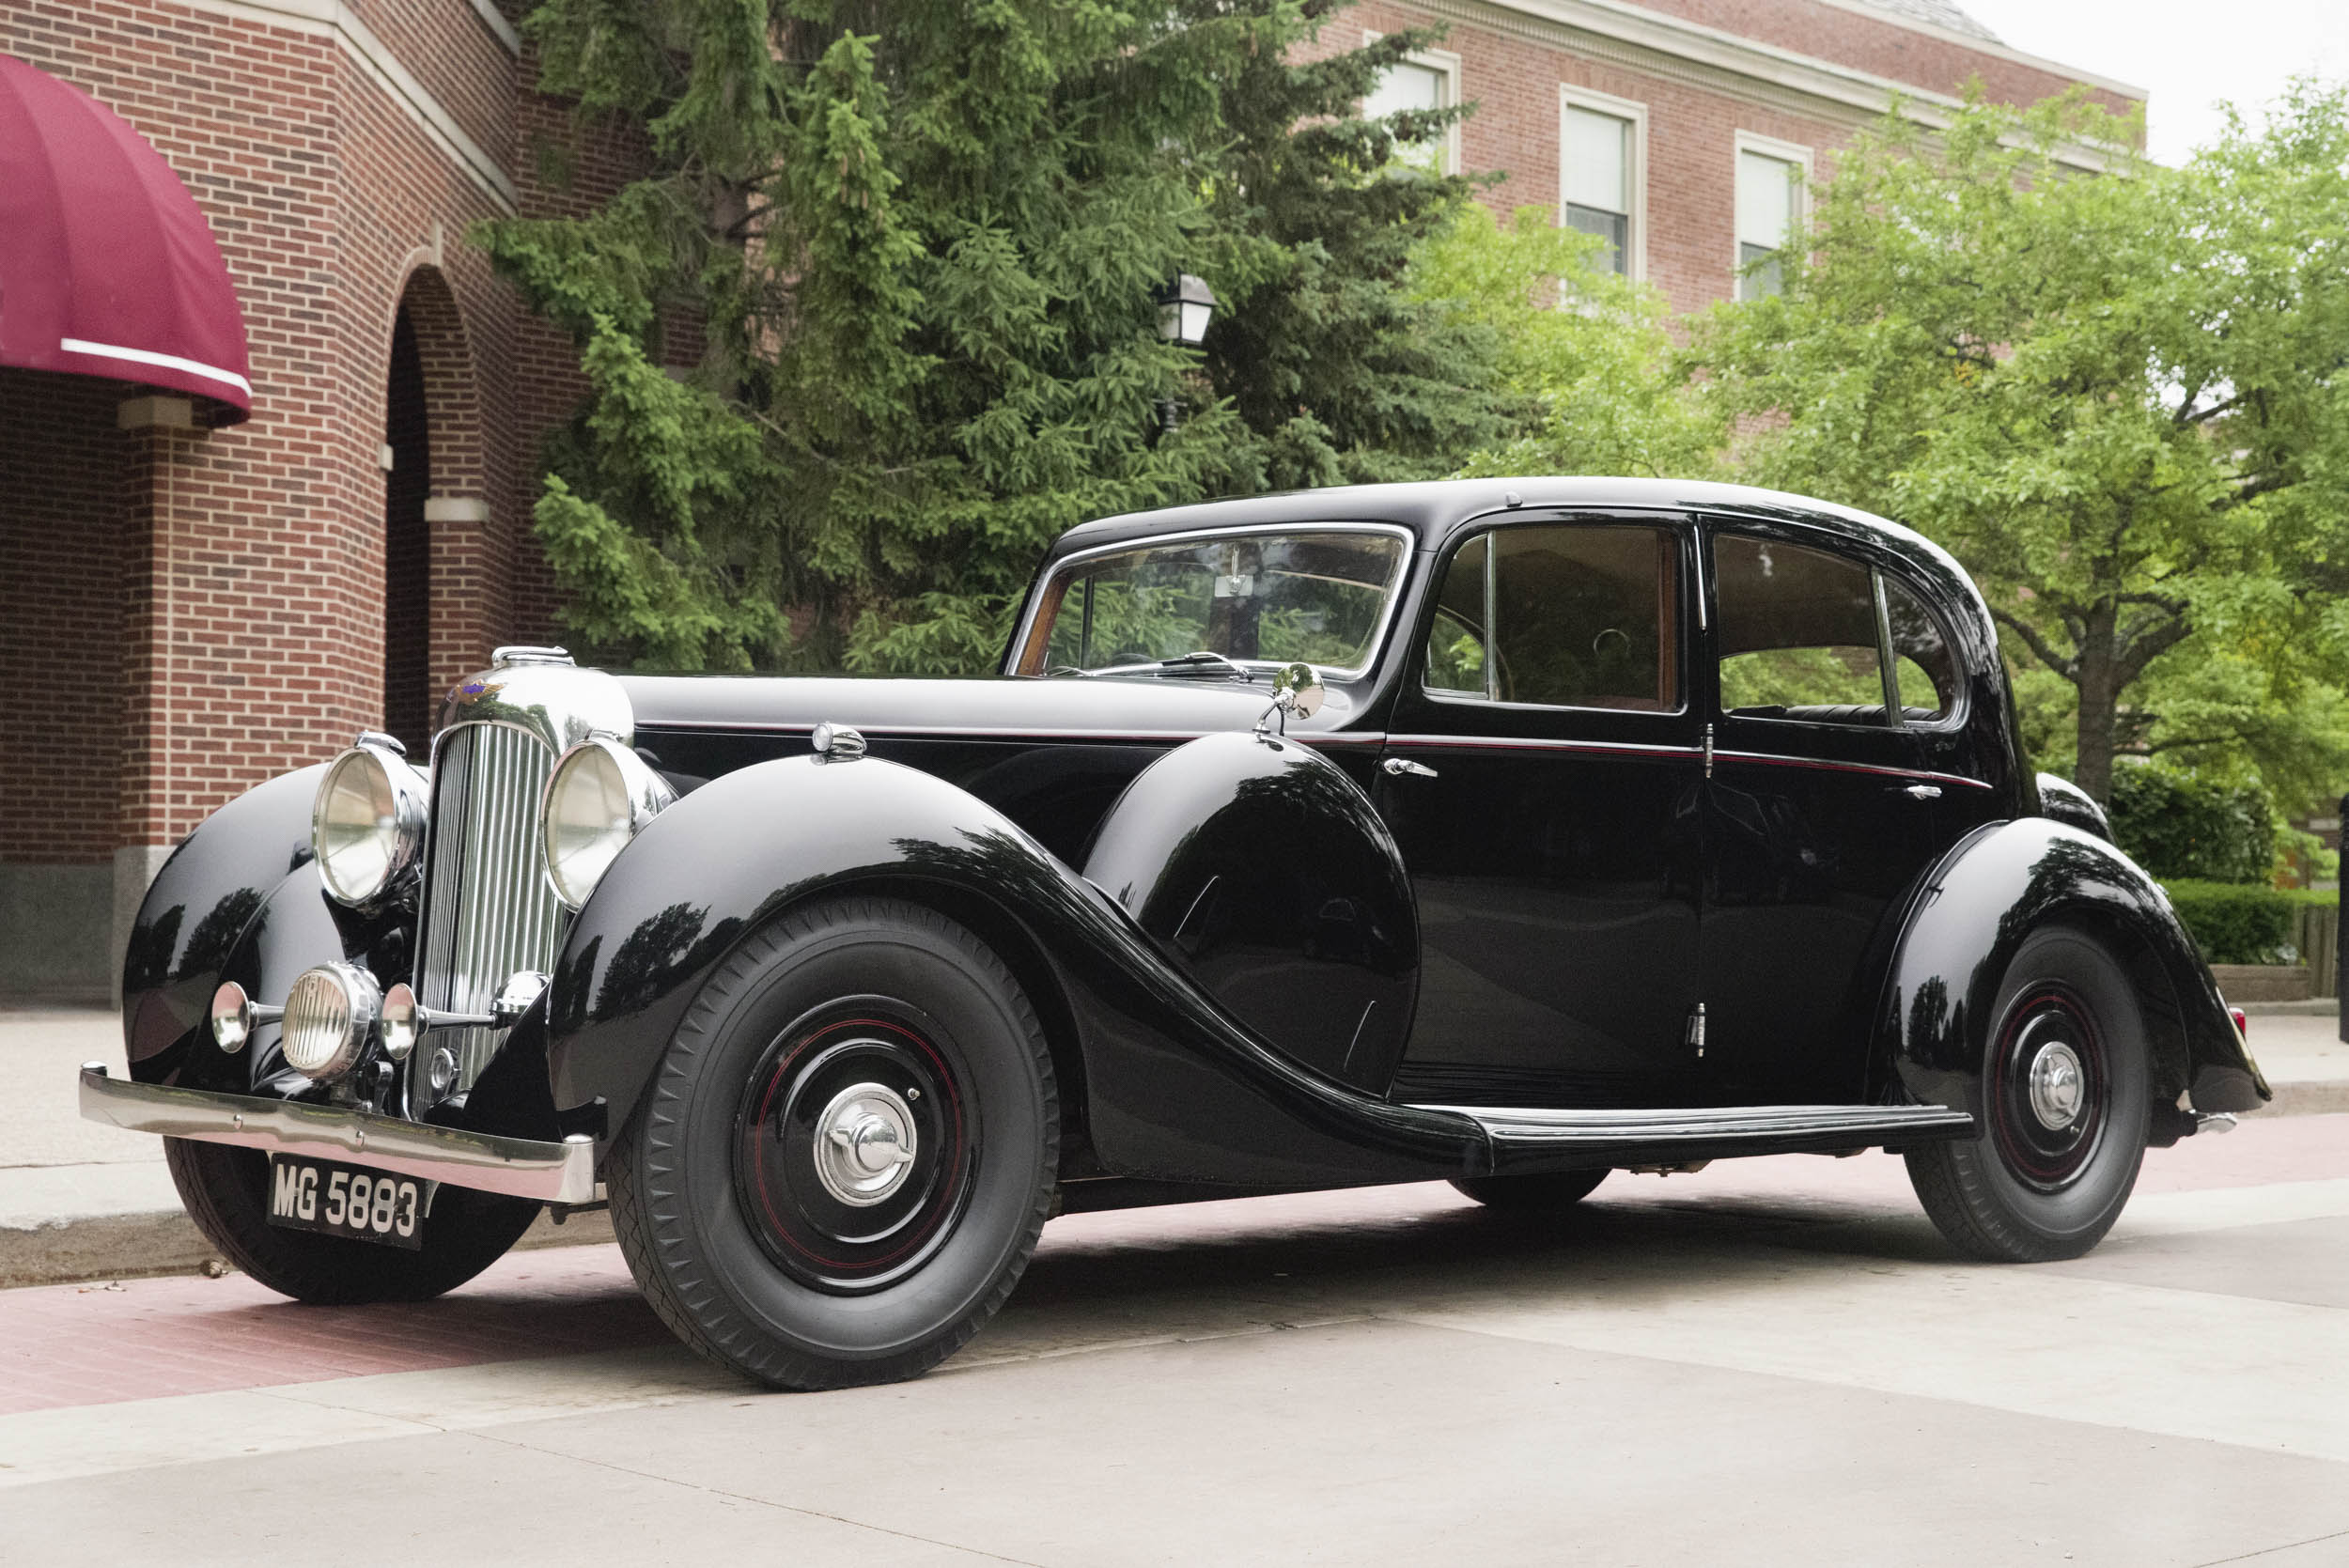 The rear section of the Dagostino's Lagonda was reportedly stretched a few inches at the factory and the body was mounted on an optional longer chassis.